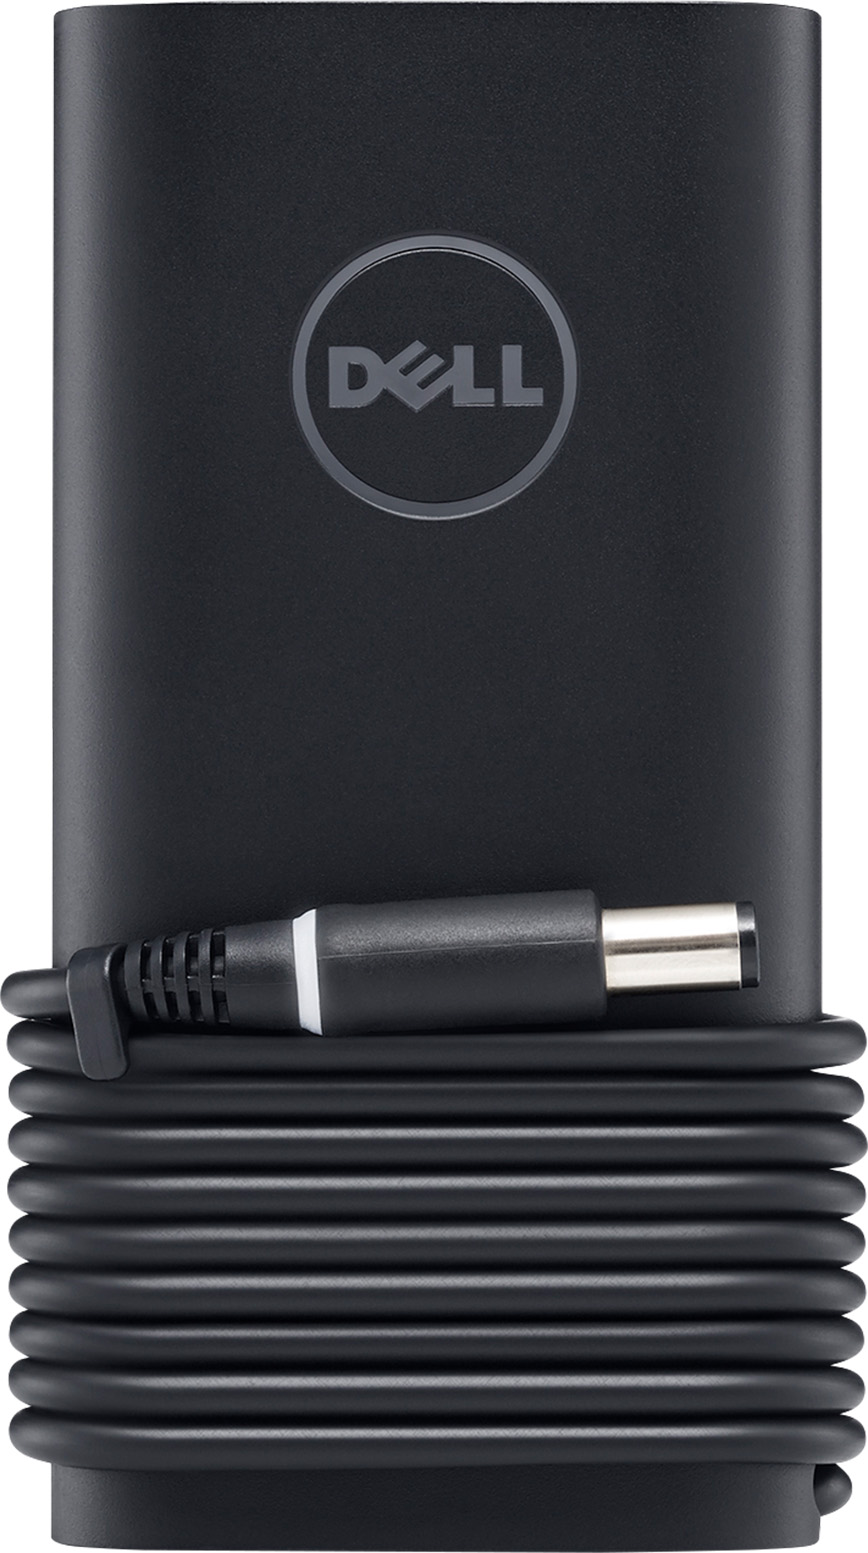 Dell Power Companion (18,000 mAh) - PW7015L